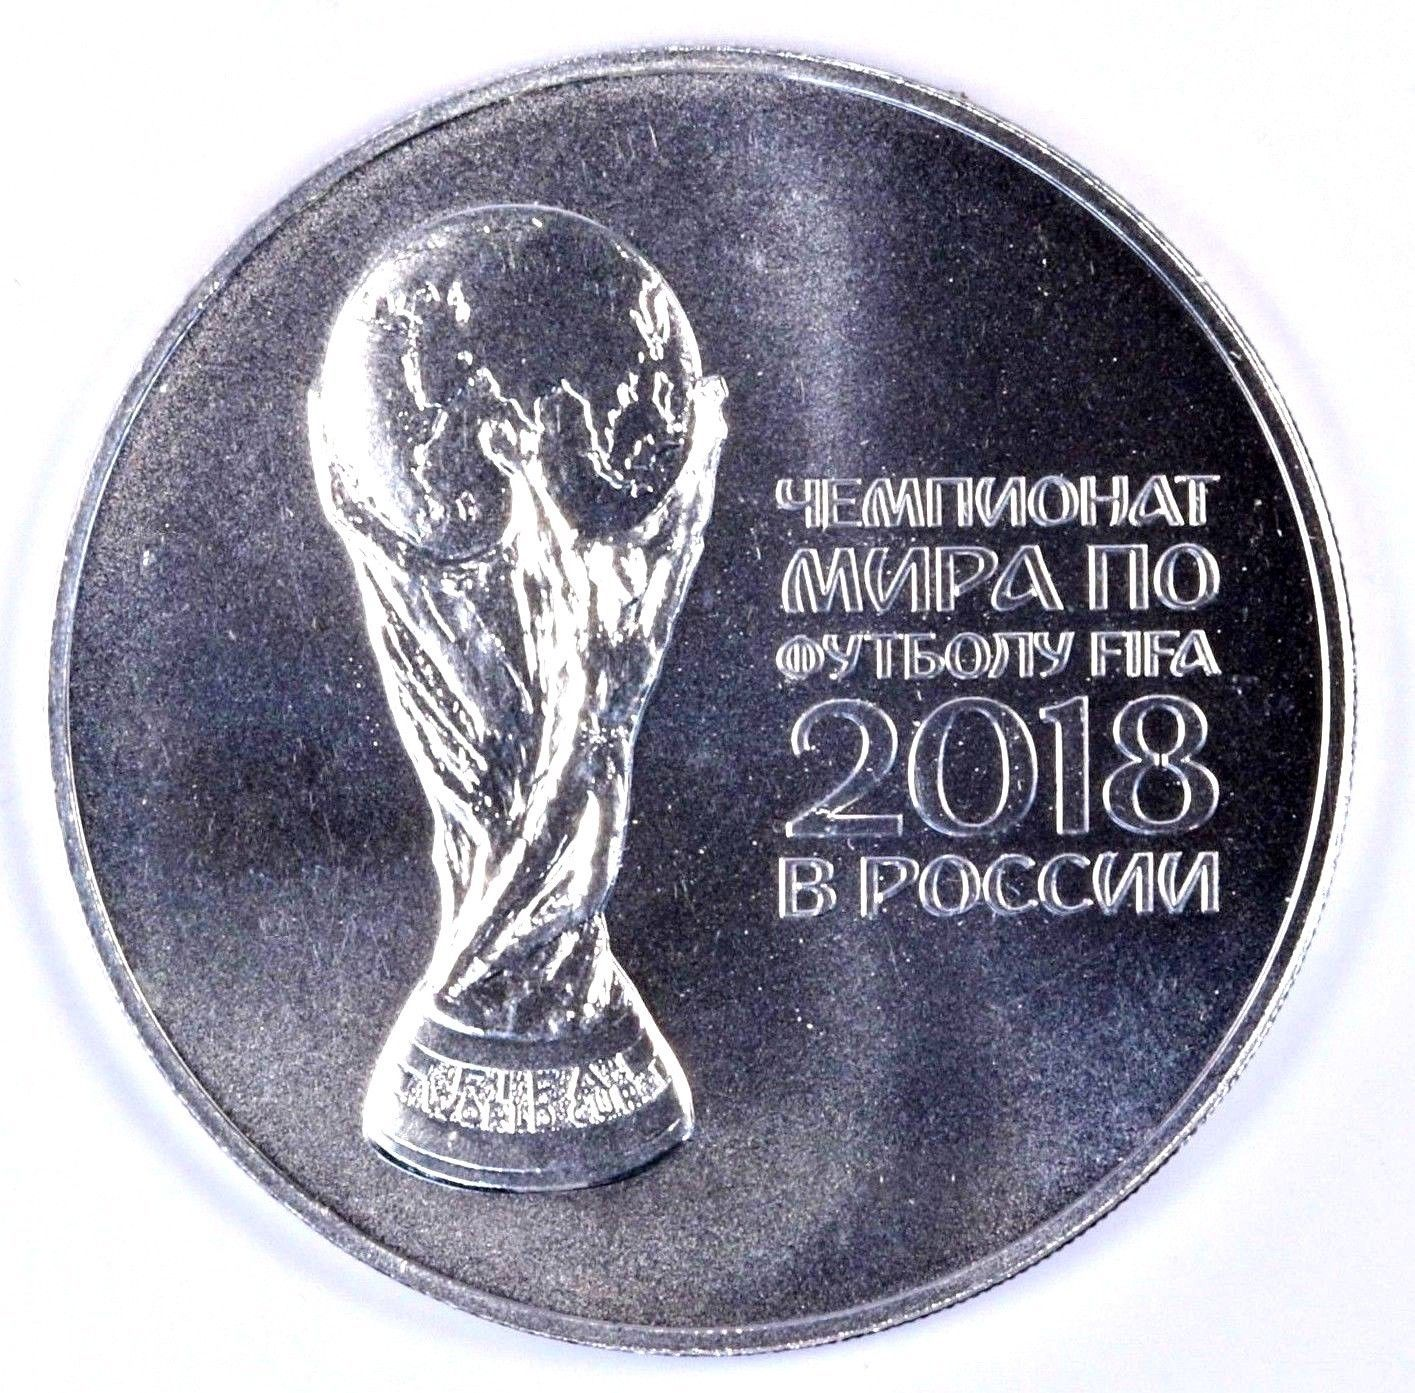 3 rubles: 2018 World Cup 59